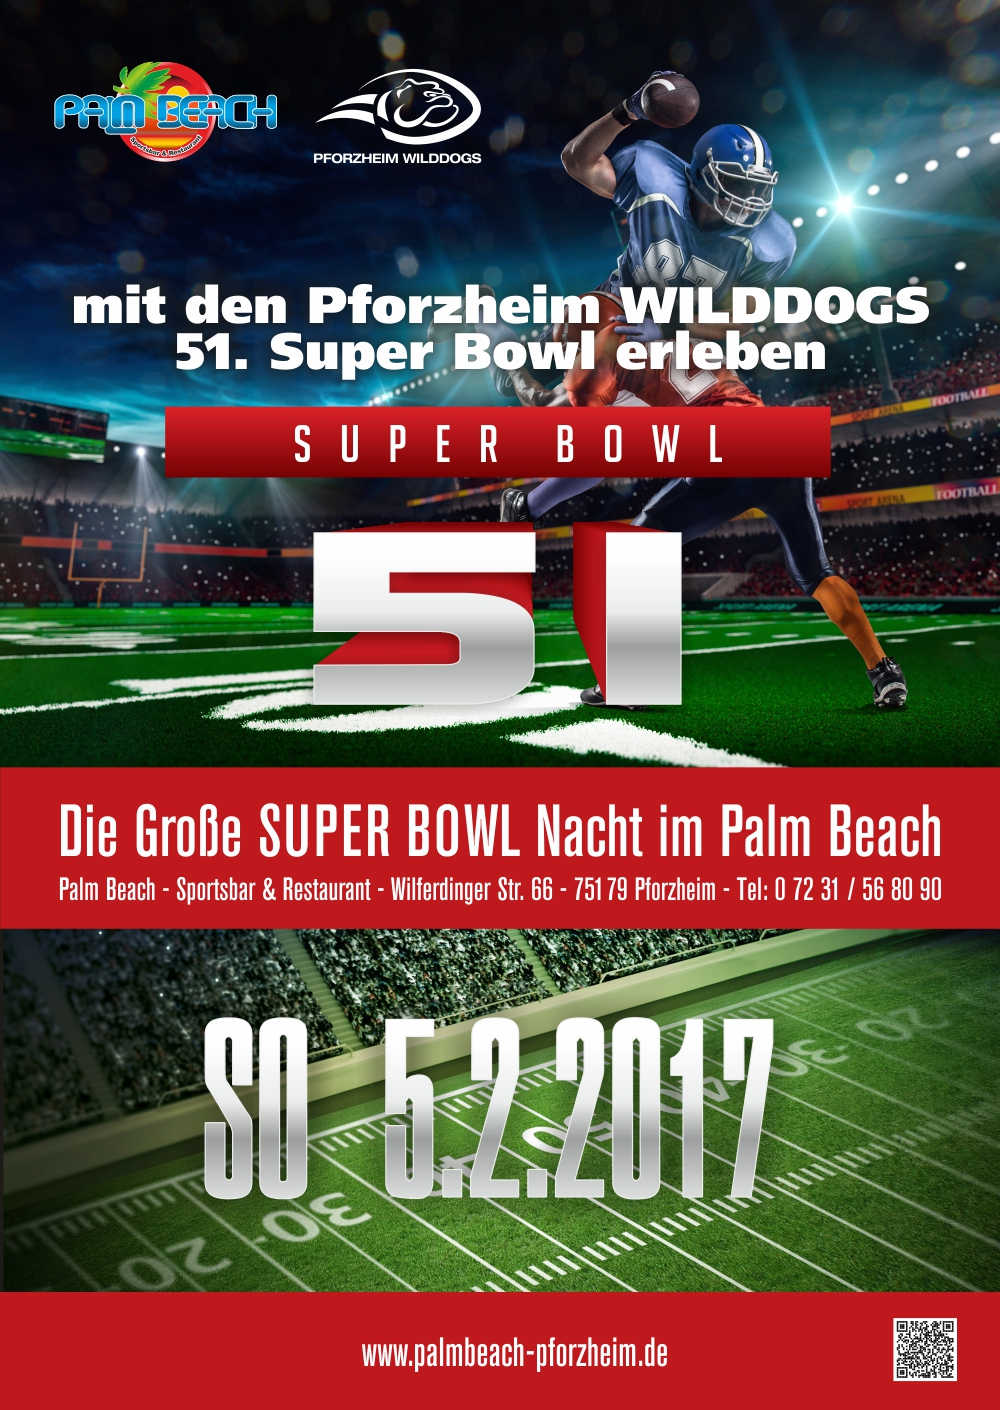 17 01 03 pb pf super bowl wilddogs